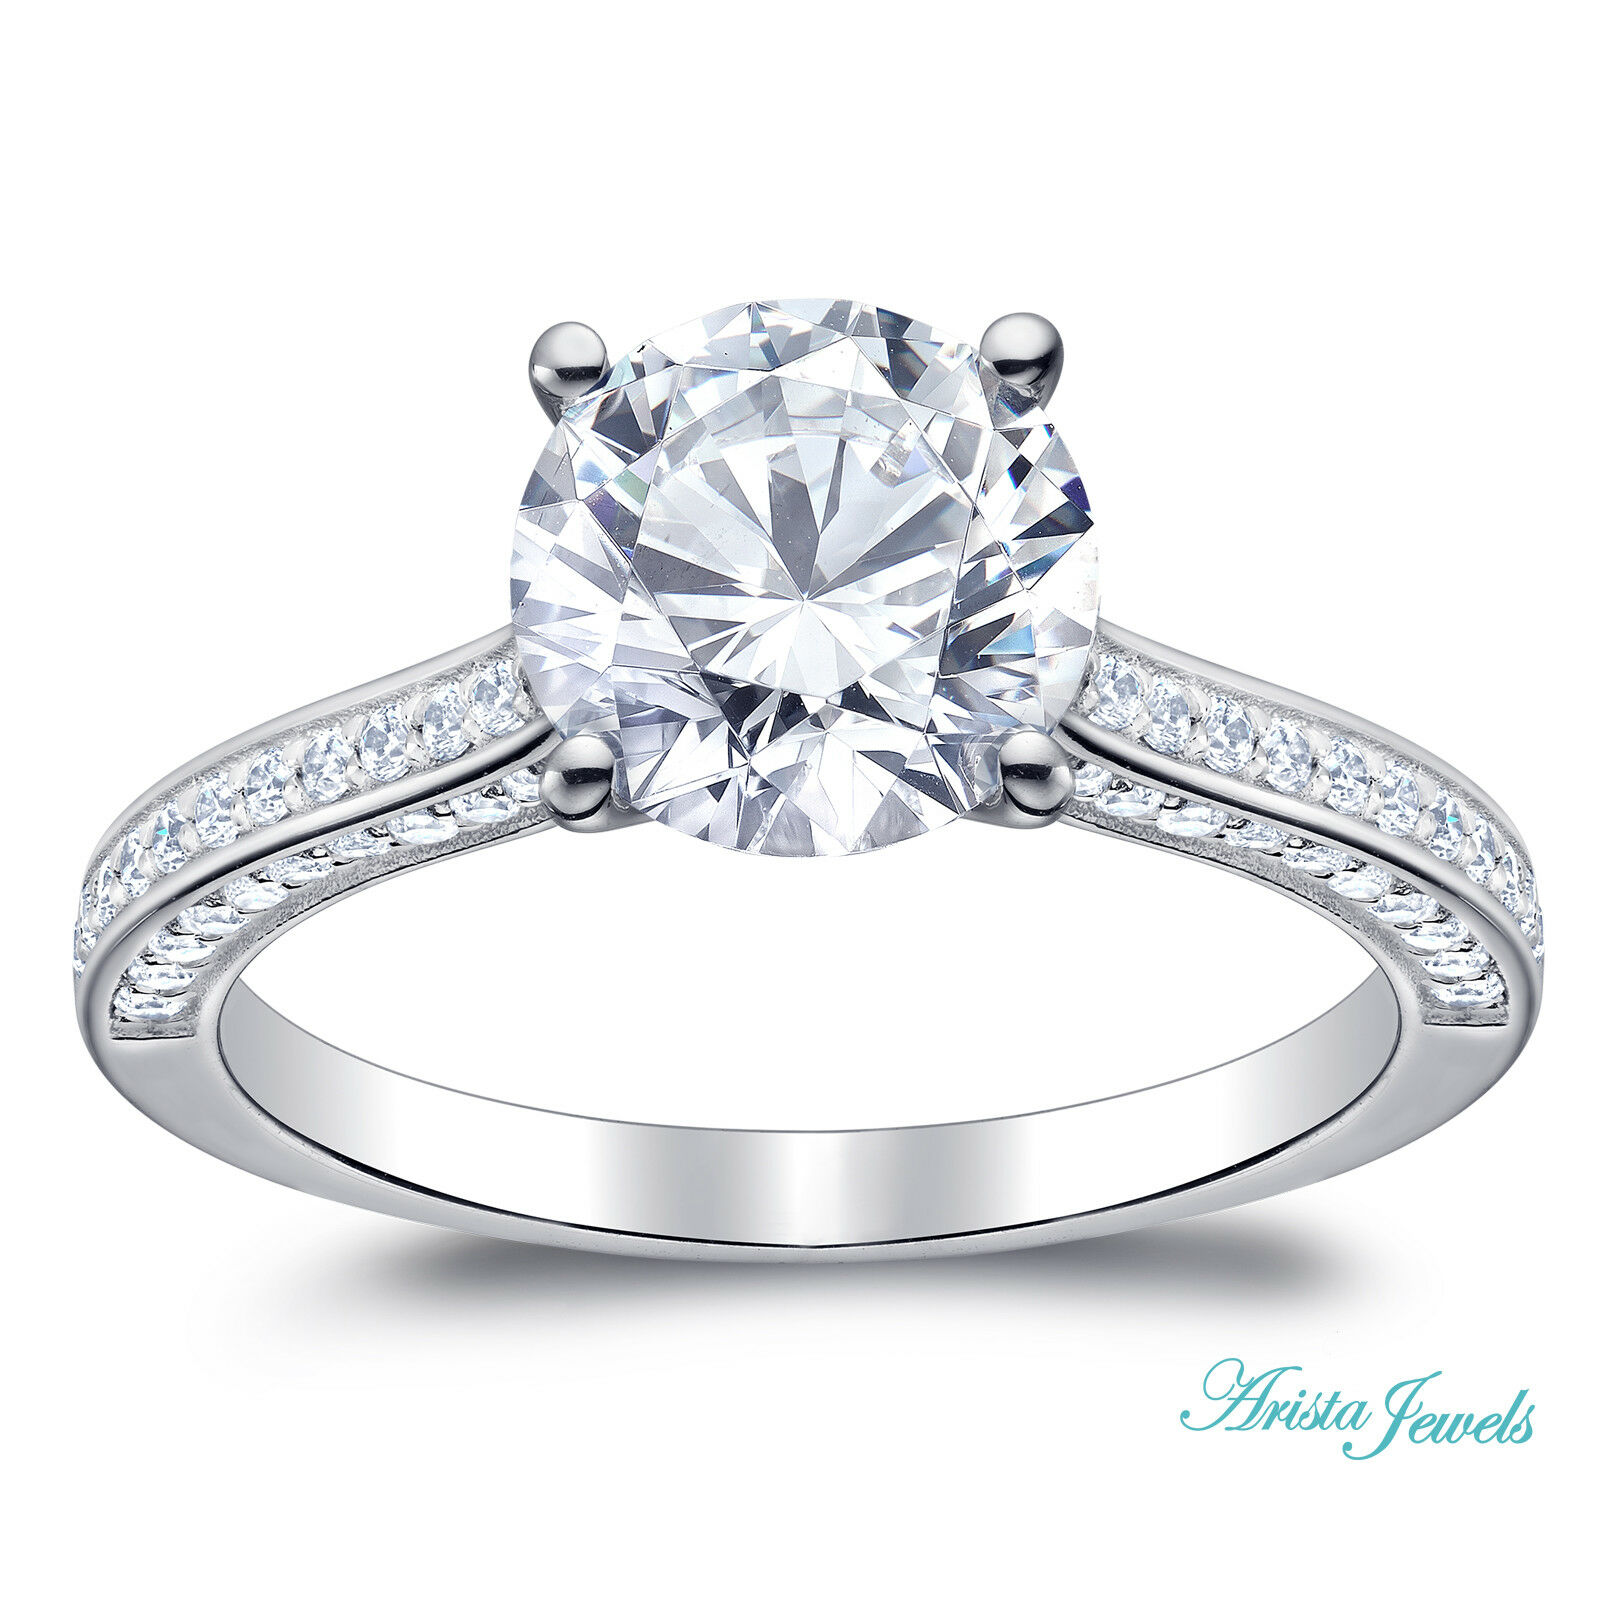 14KT Solid White Gold 2.60Ct Fantastic Round Shape Solitaire Engagement Ring